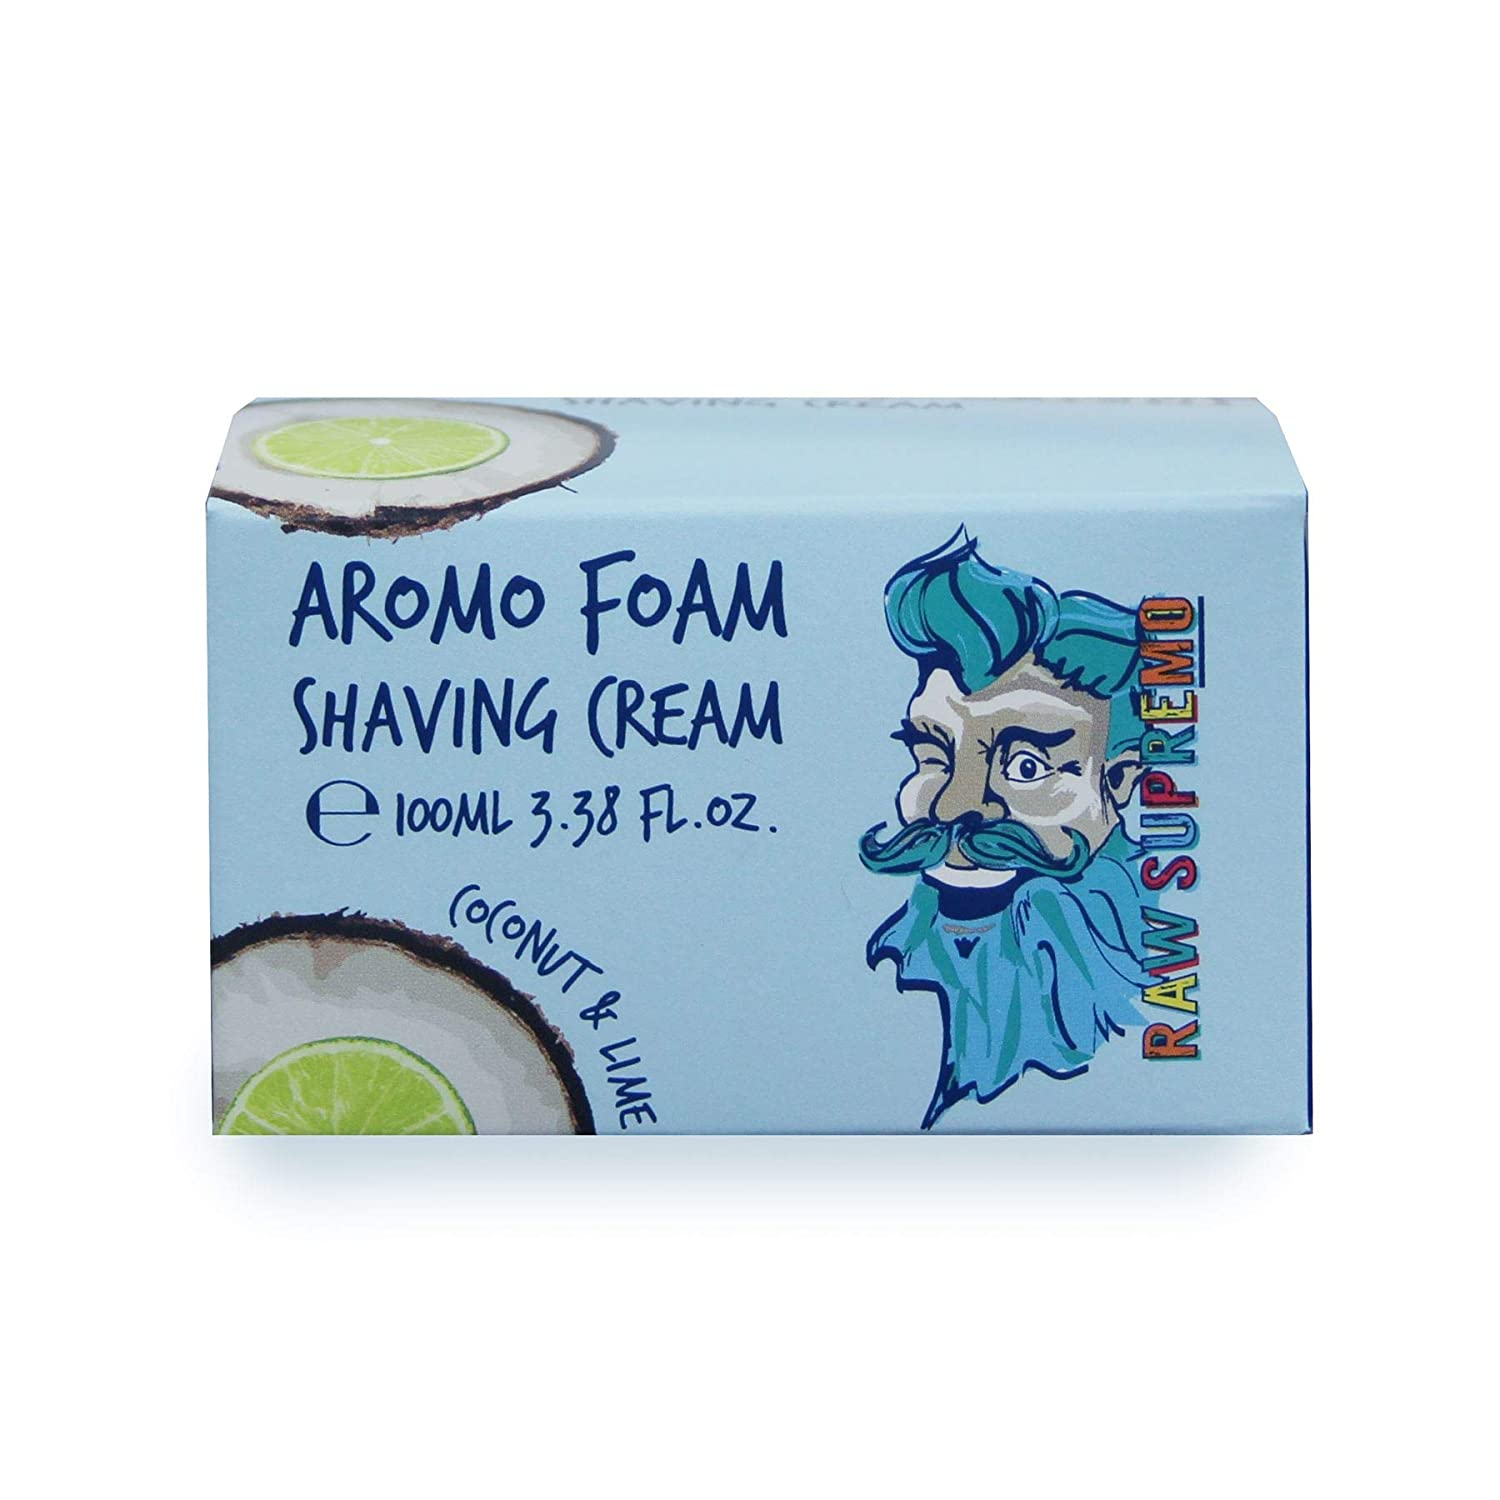 Raw Supremo Aromo Foam Shaving Cream 100ml Coconut & Lime Fragrance Mens Shaving Preparation